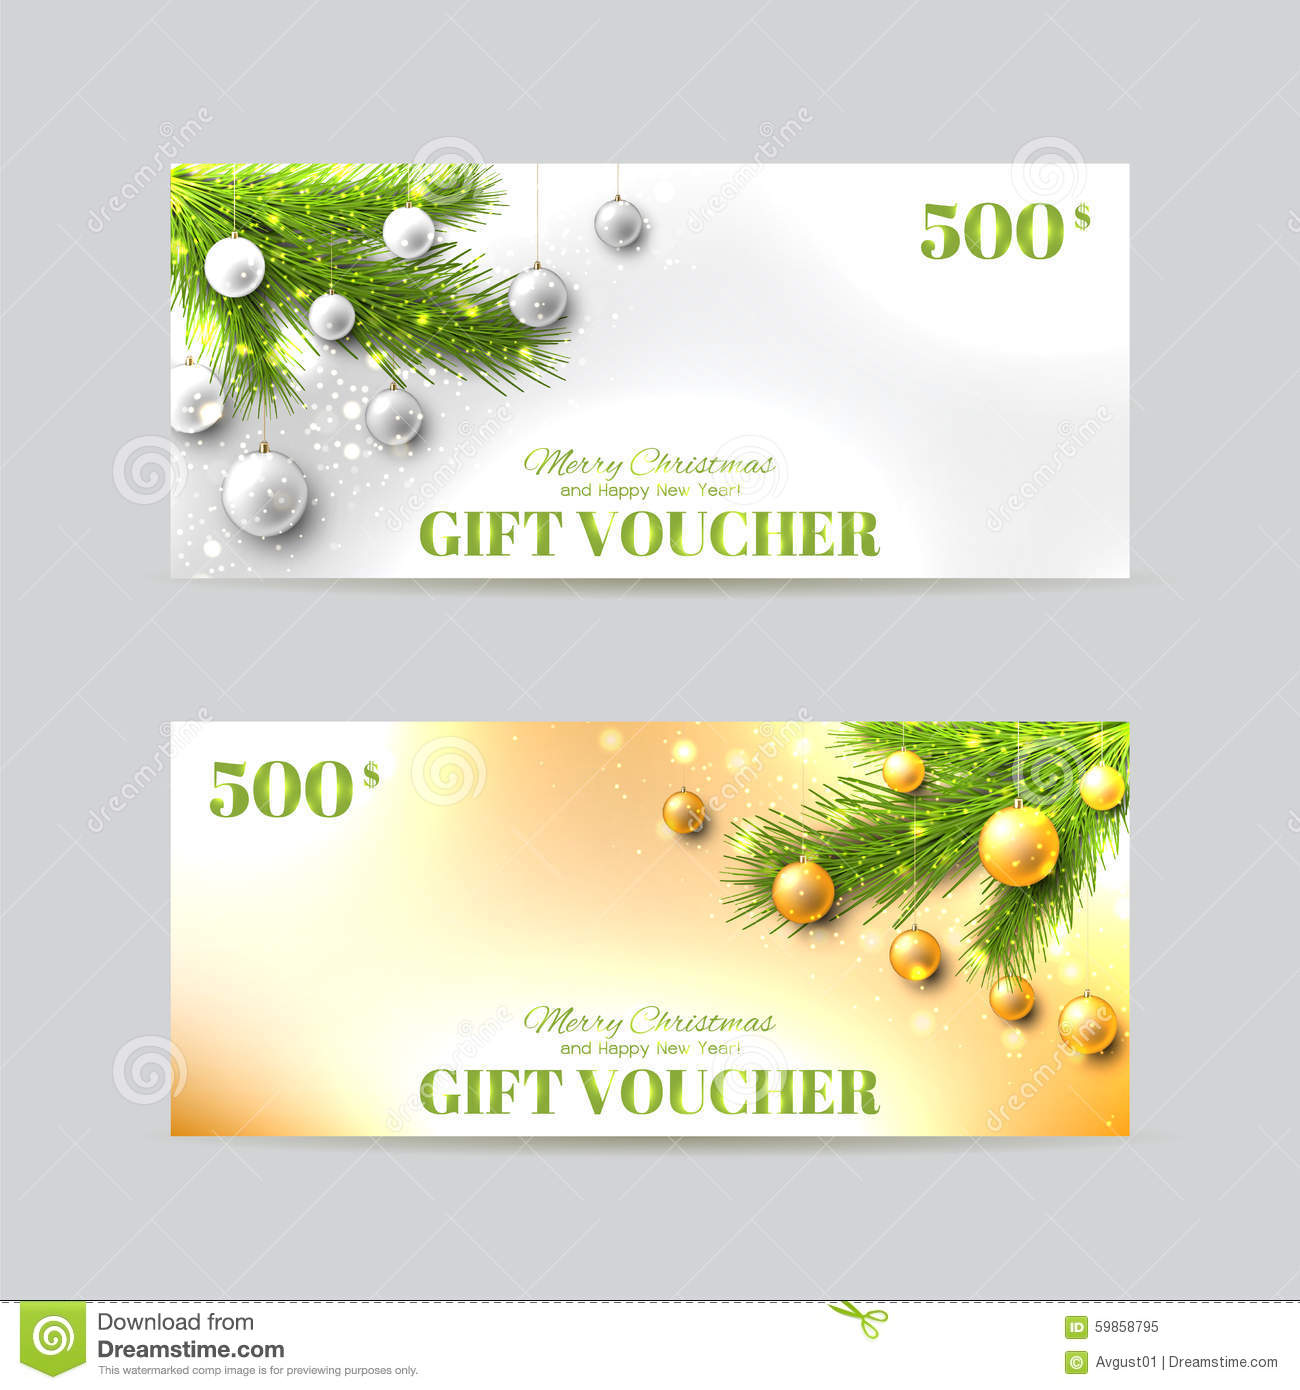 gift voucher template christmas fir tree stock vector image gift voucher template christmas fir tree